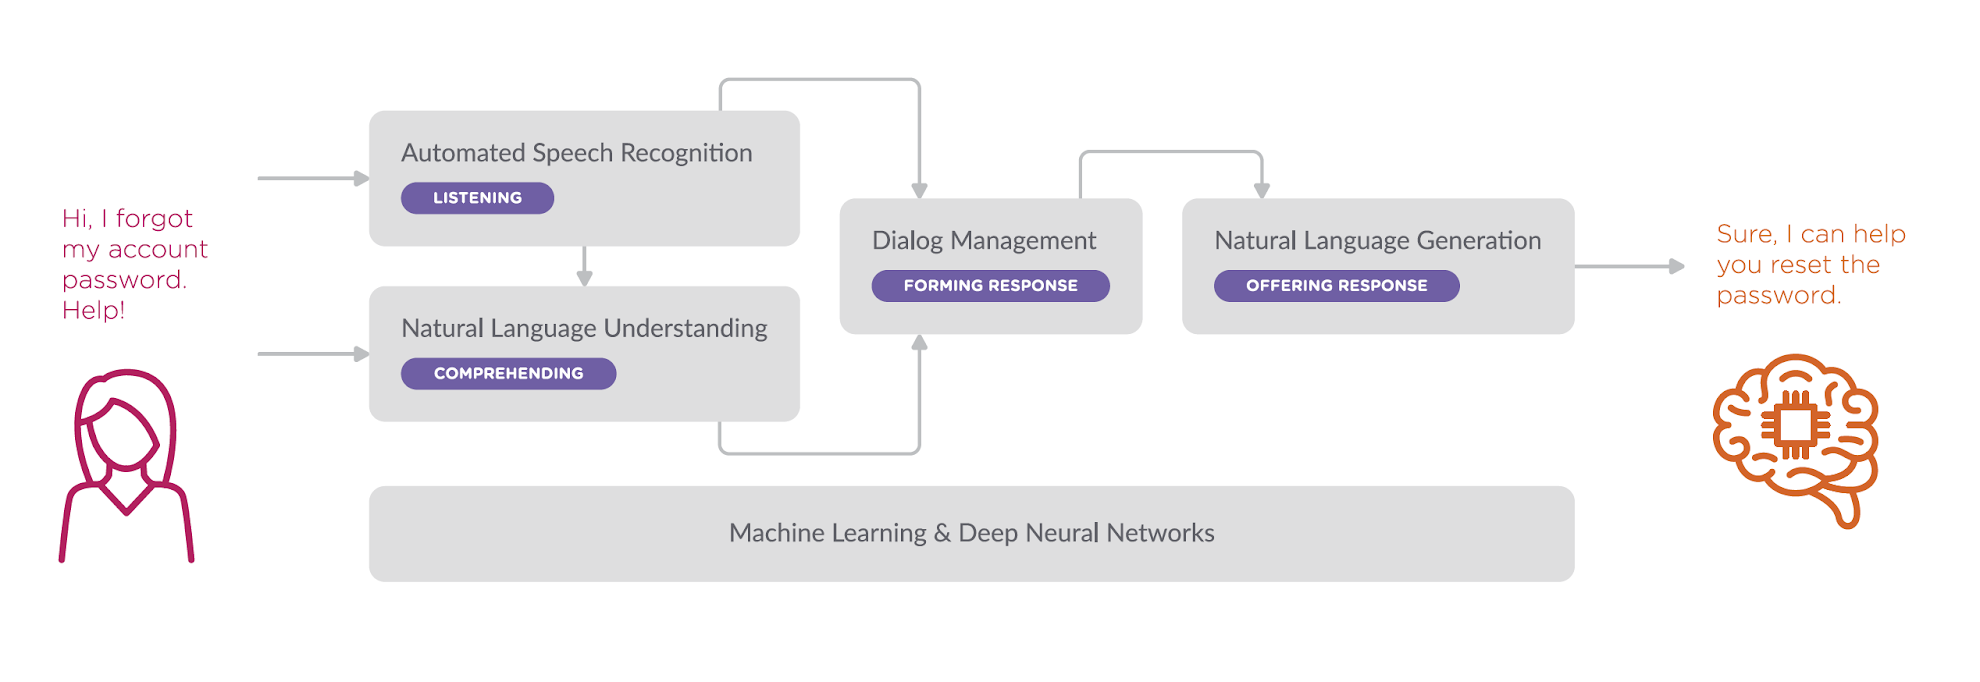 Conversational AI: What is it and how does it work?